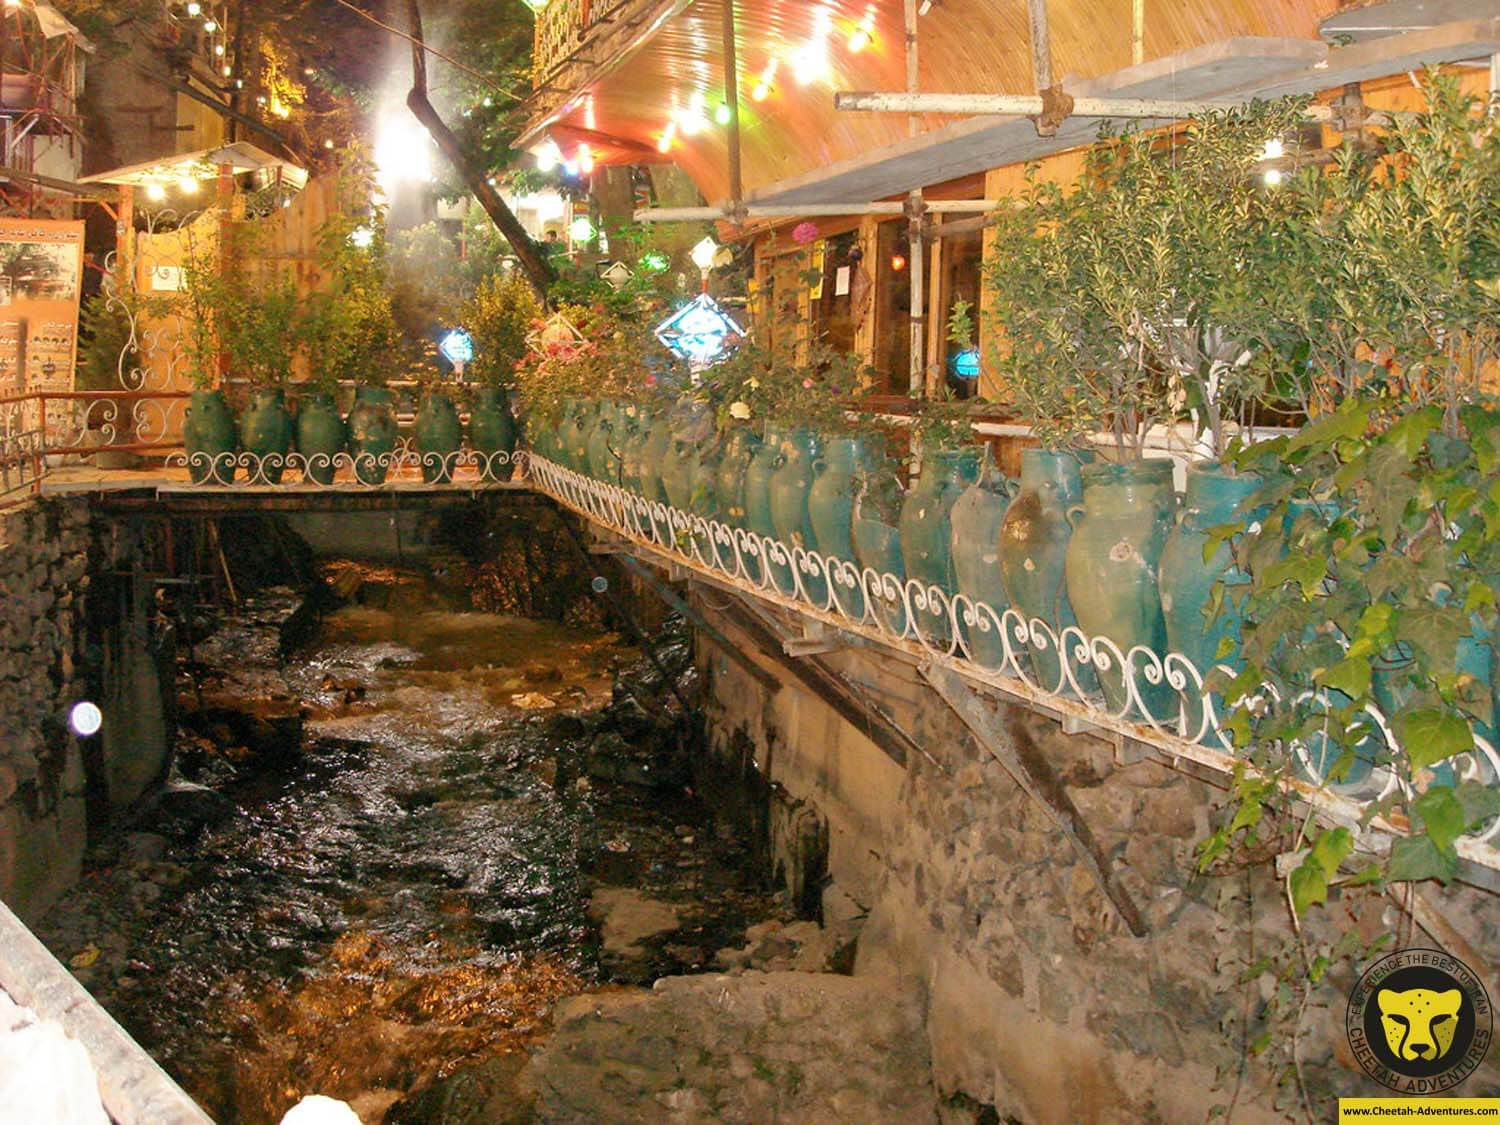 Darband tehran tour iran travel agency cheetah adventures